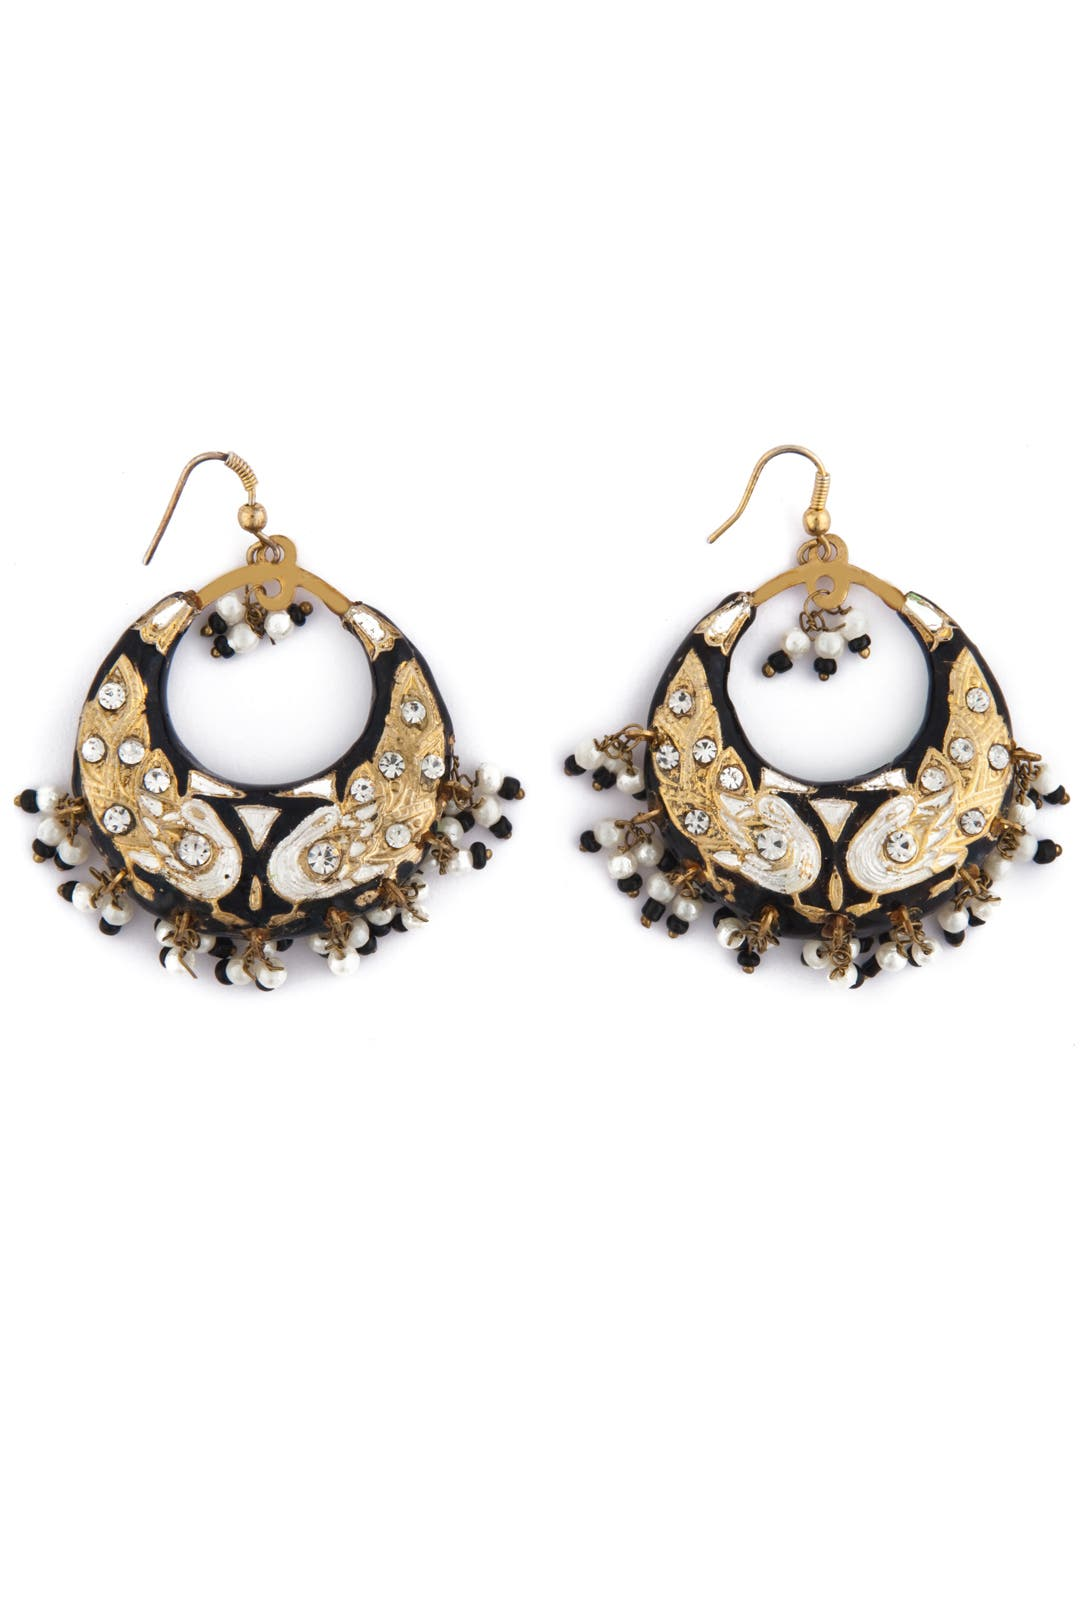 Black Moon Earrings by Chamak by Priya Kakkar